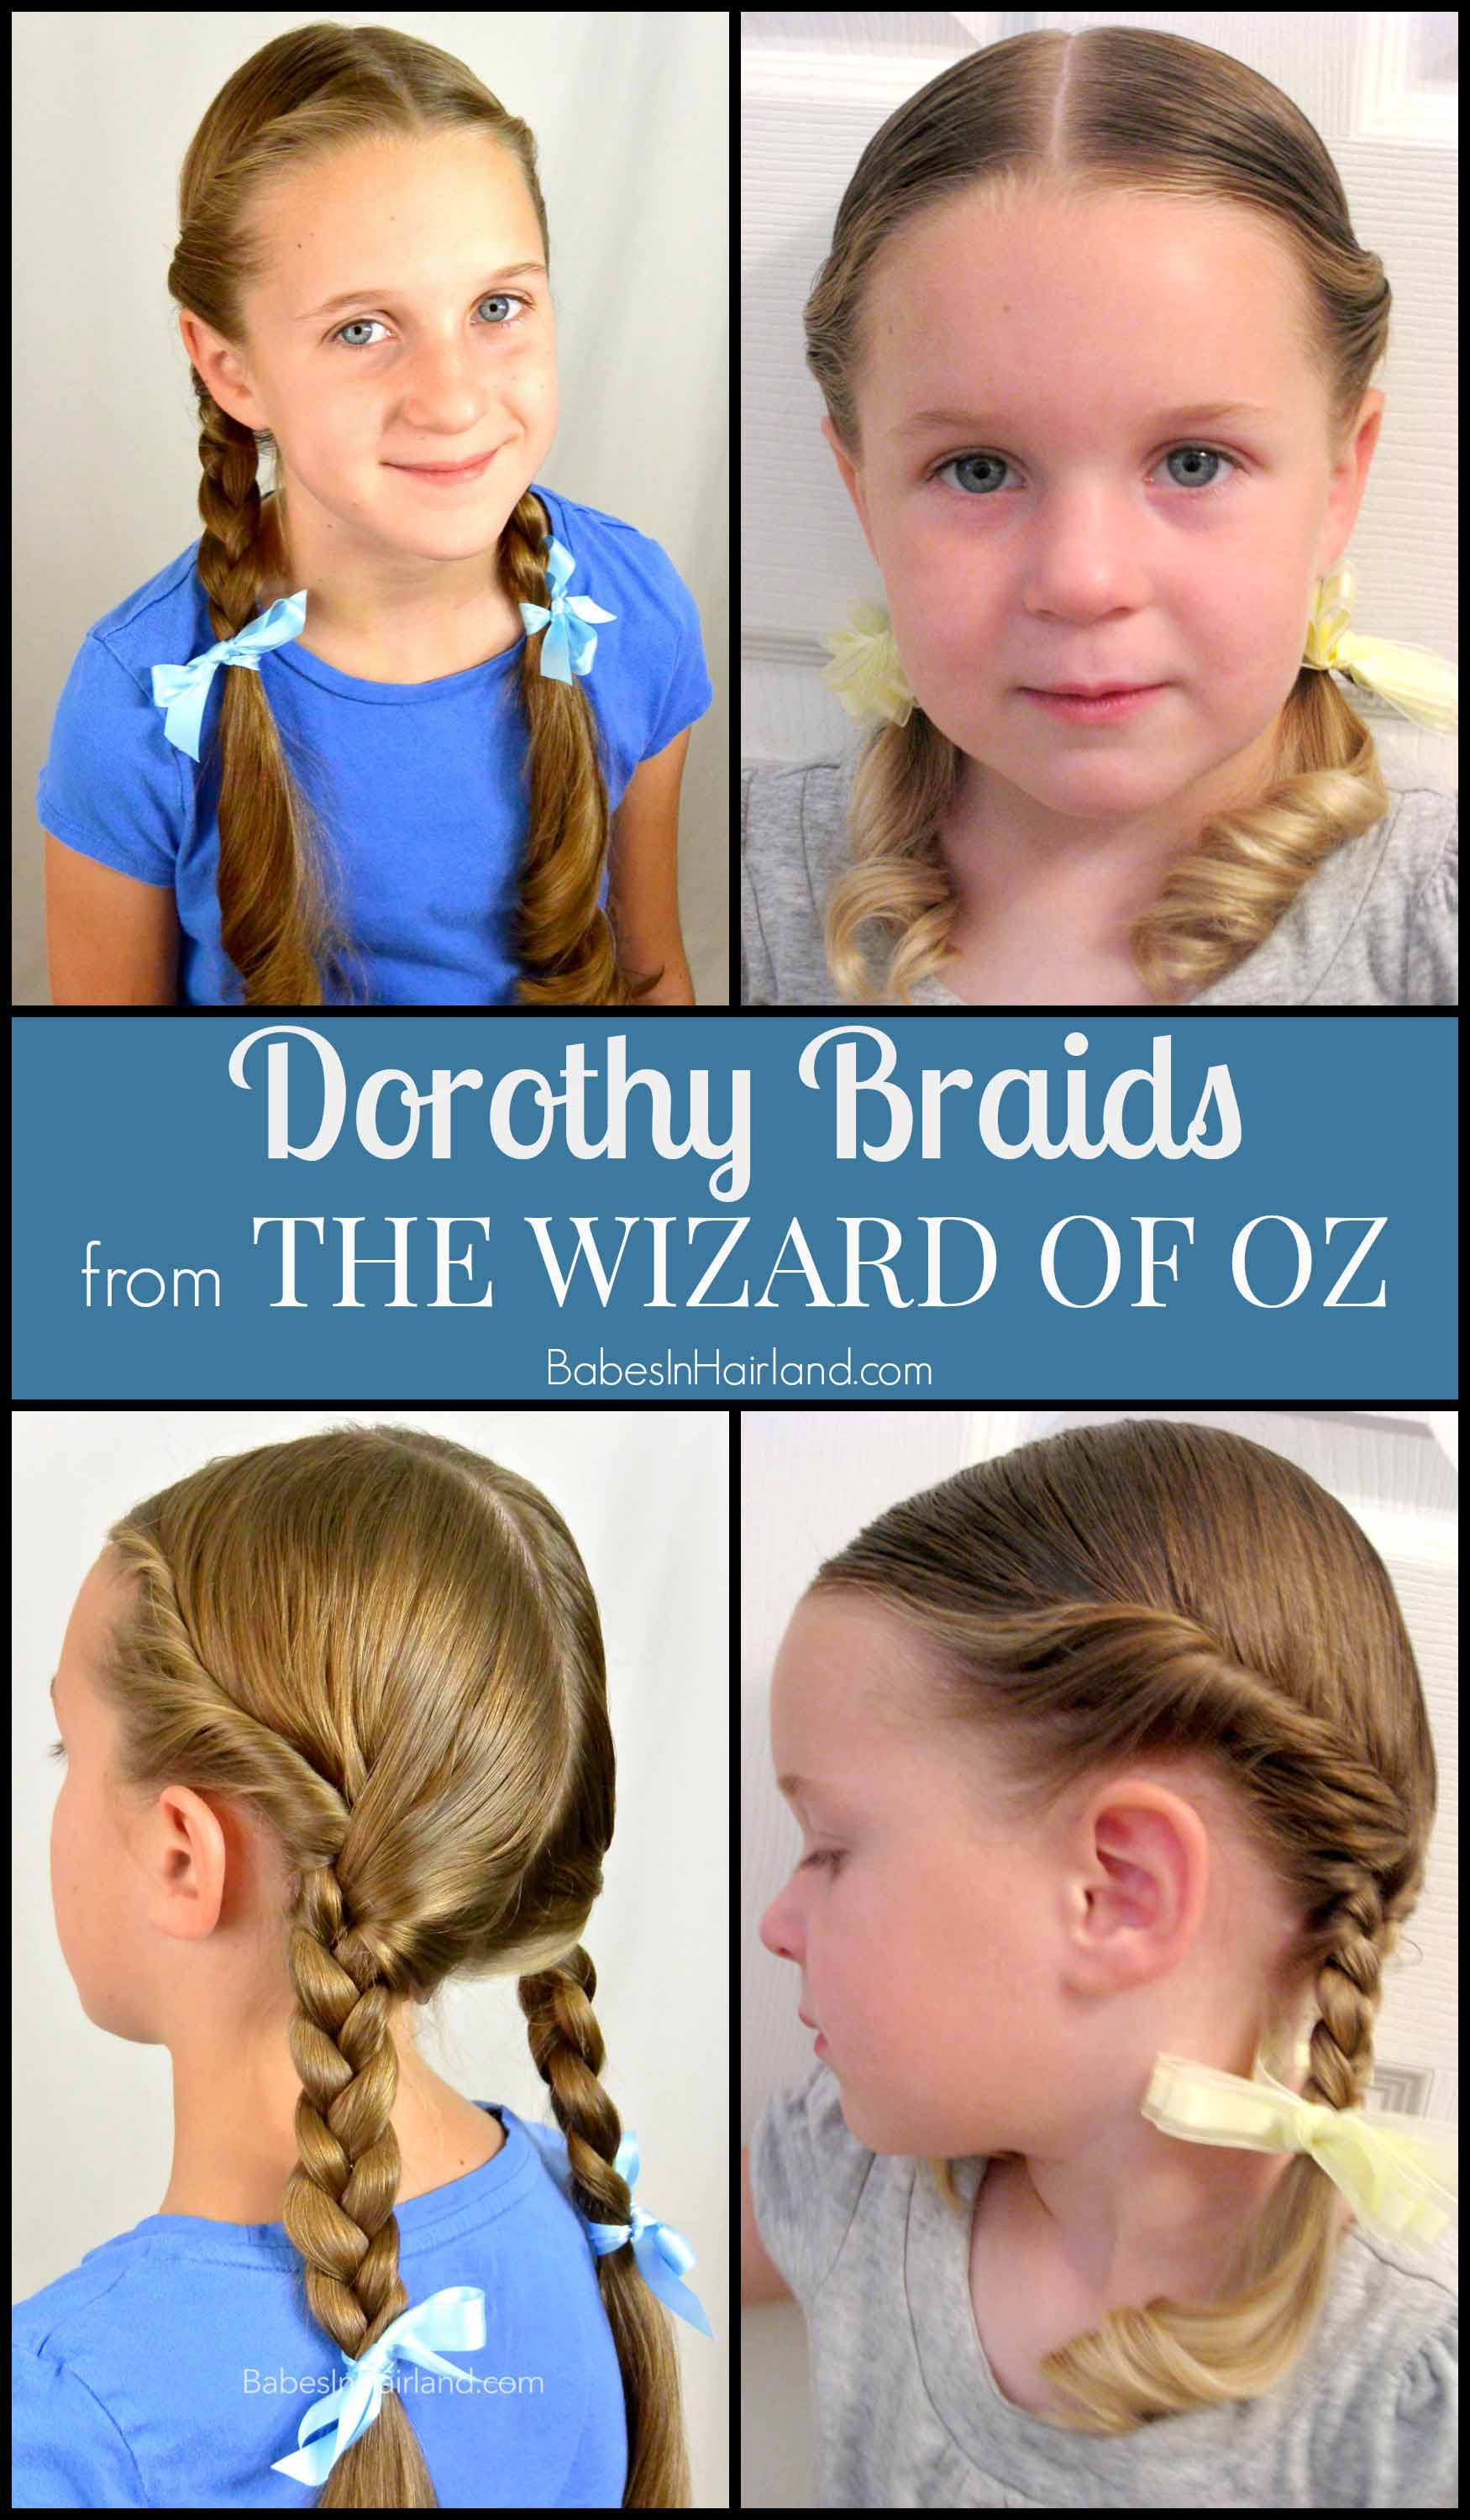 Awe Inspiring Dorothy Gale Braids Halloween Hairstyle Babes In Hairland Hairstyles For Men Maxibearus